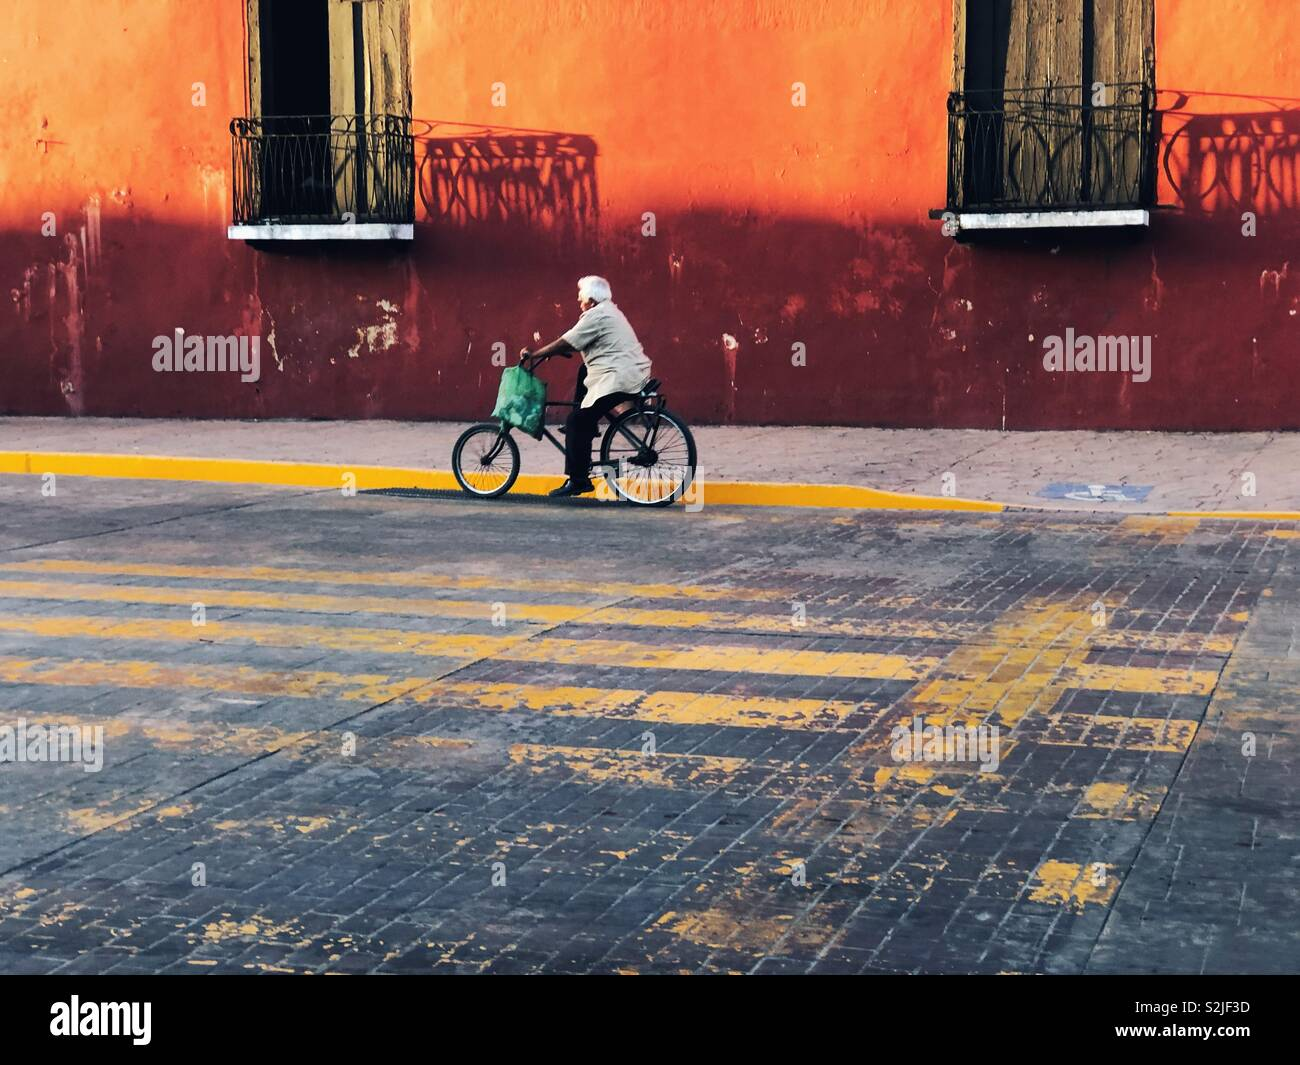 Man on the bike on the street ofValladolid, Mexico - Stock Image